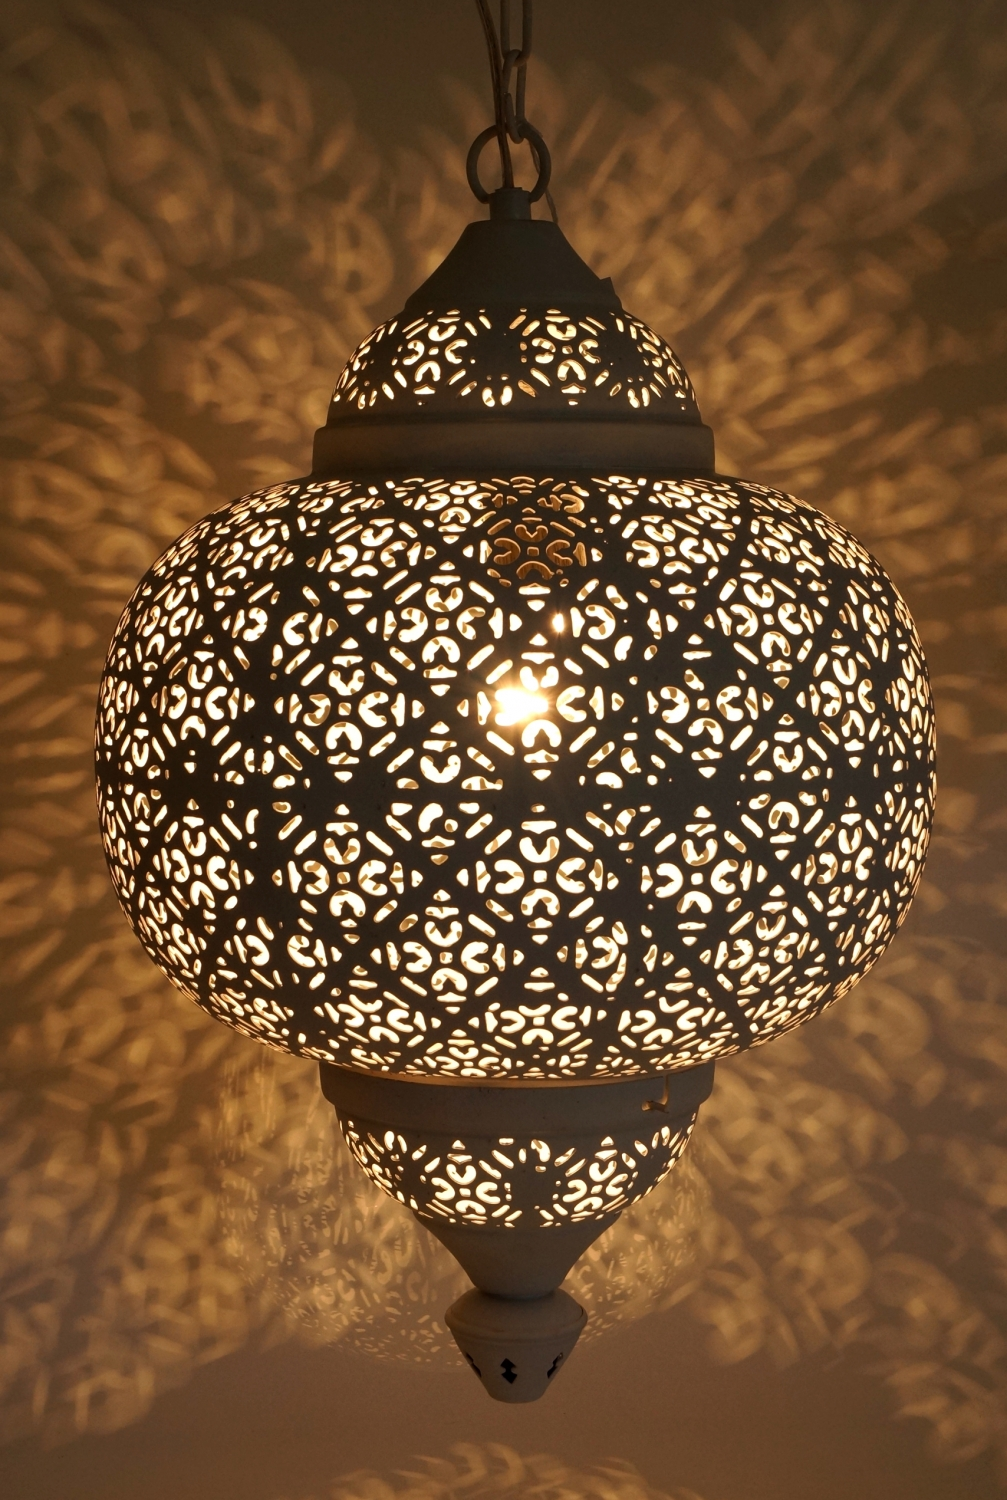 Wei e metall deckenleuchte in marrokanischem design for Orientalische metall lampen